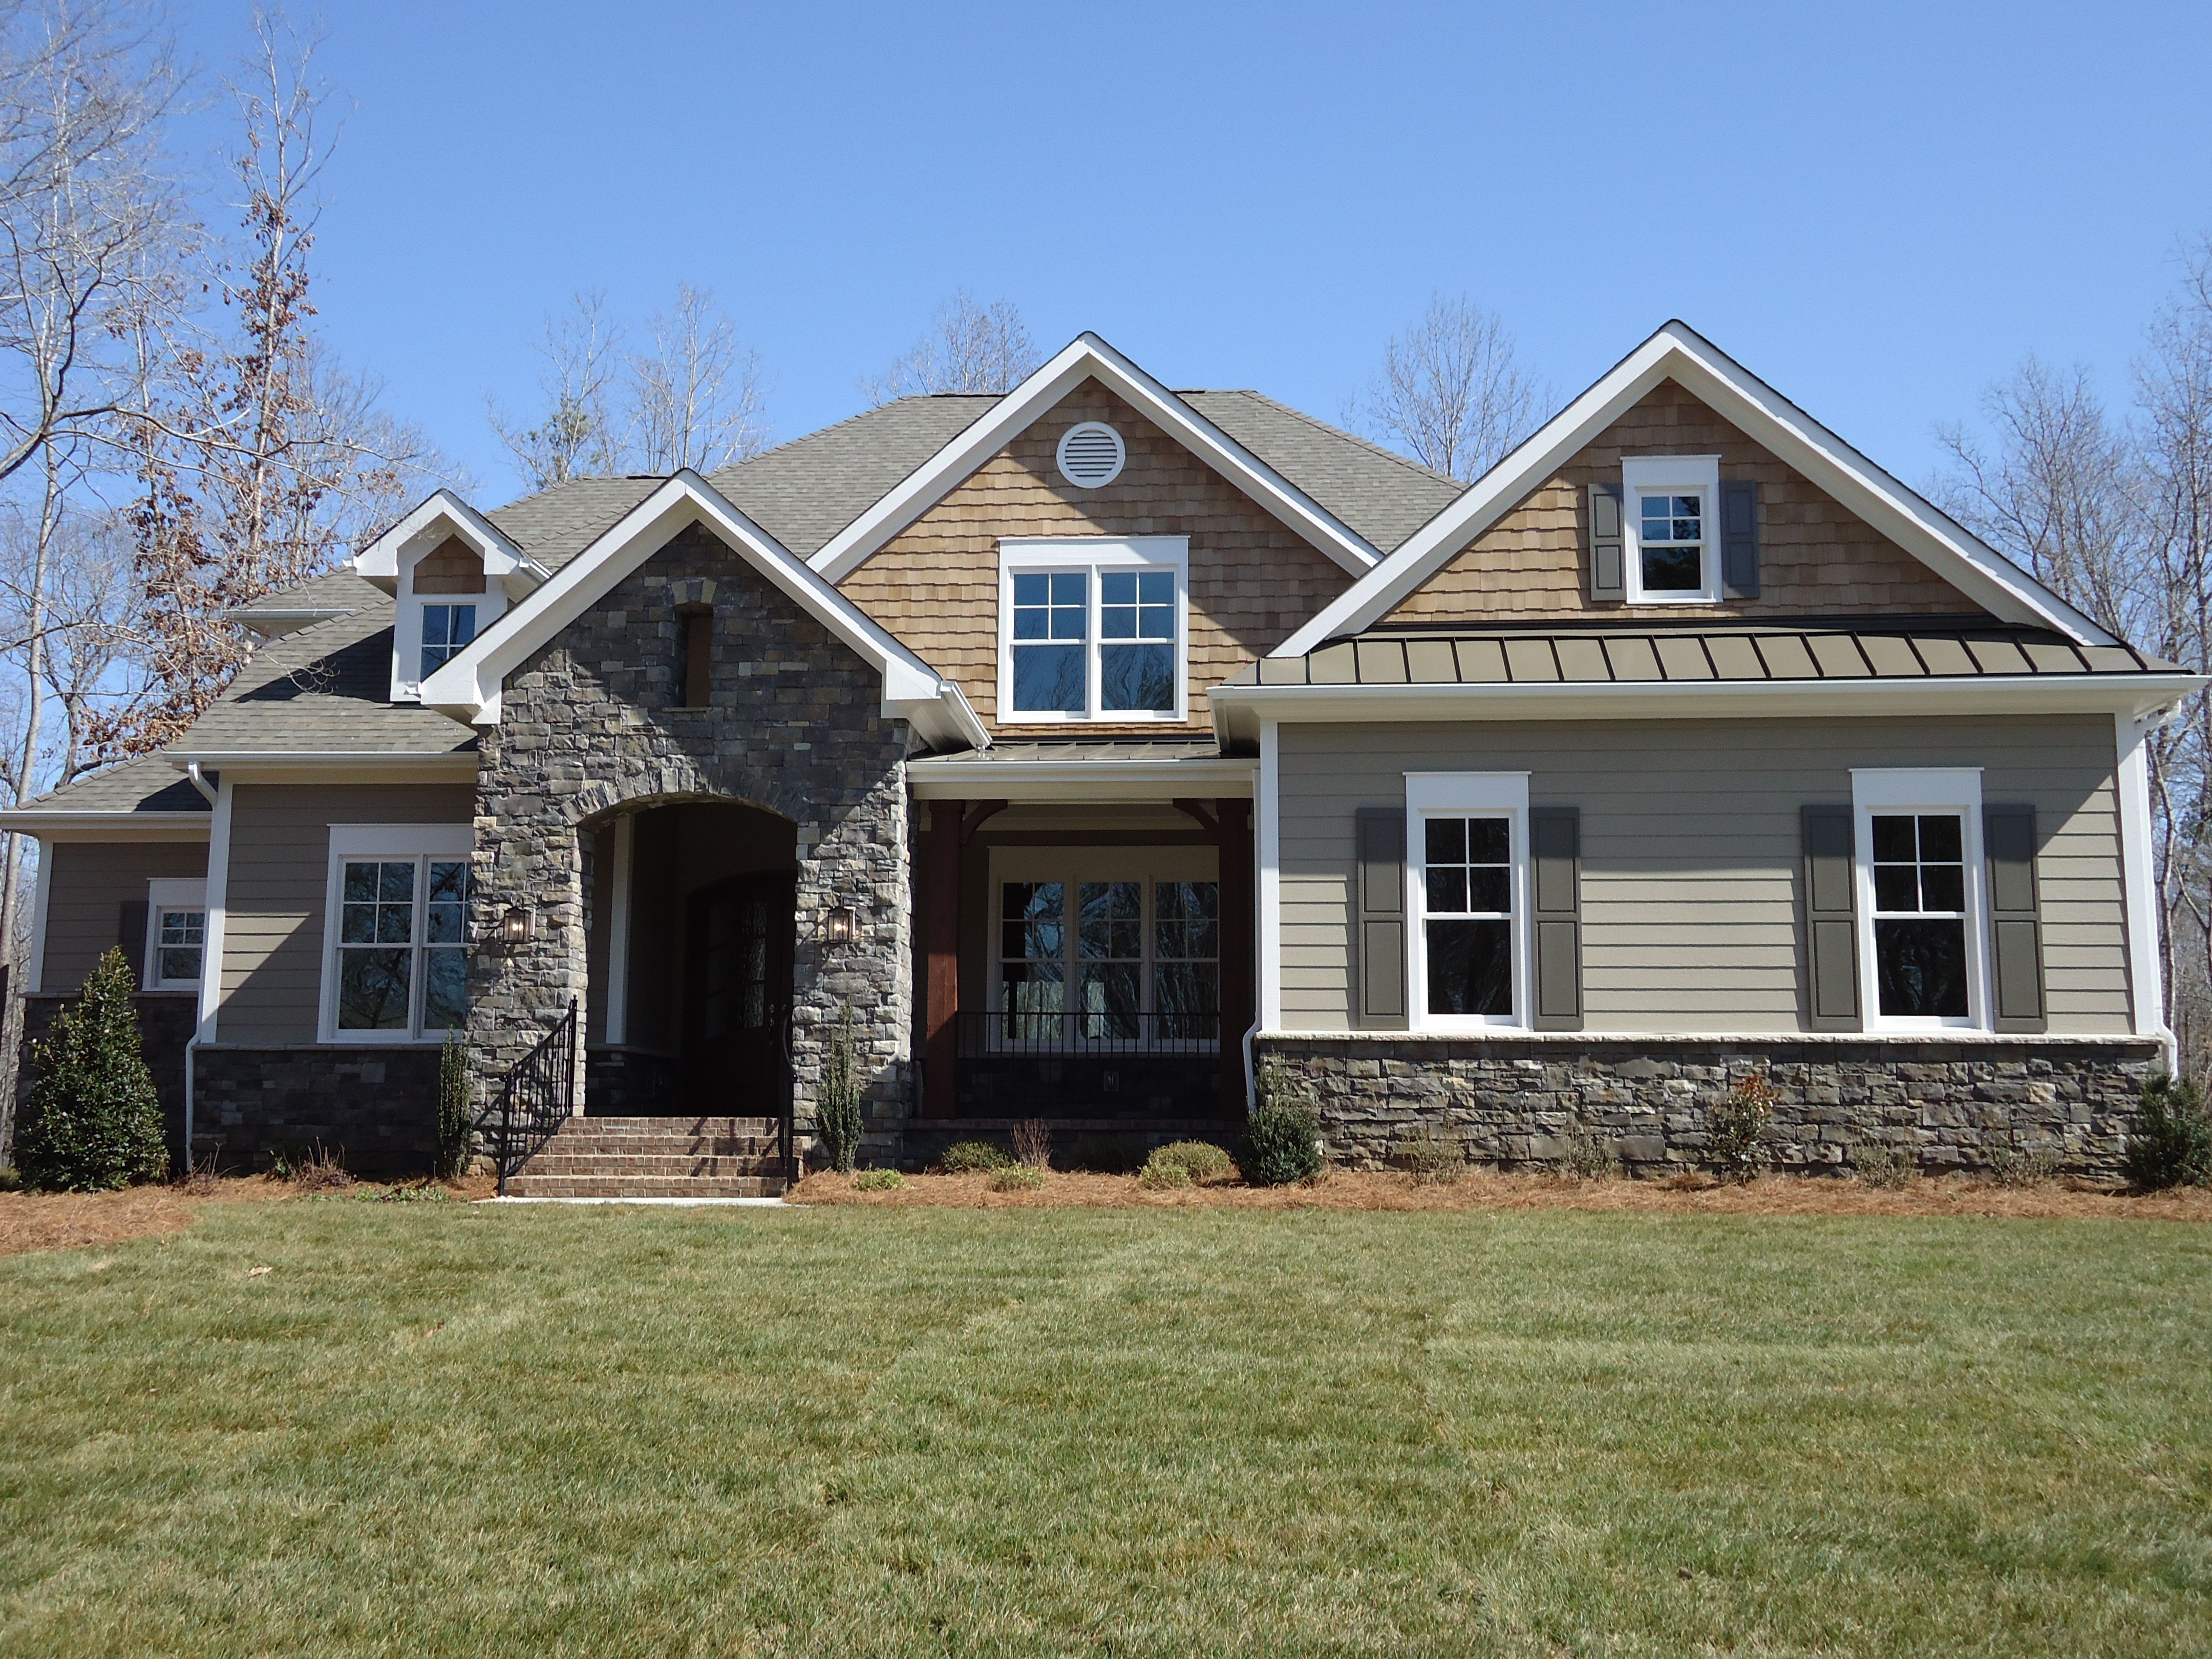 Exterior home colors with shutters - Arh Plan The Willowbrook 1133f Exterior 5 Roof Owens Corning Oakridge Driftwood